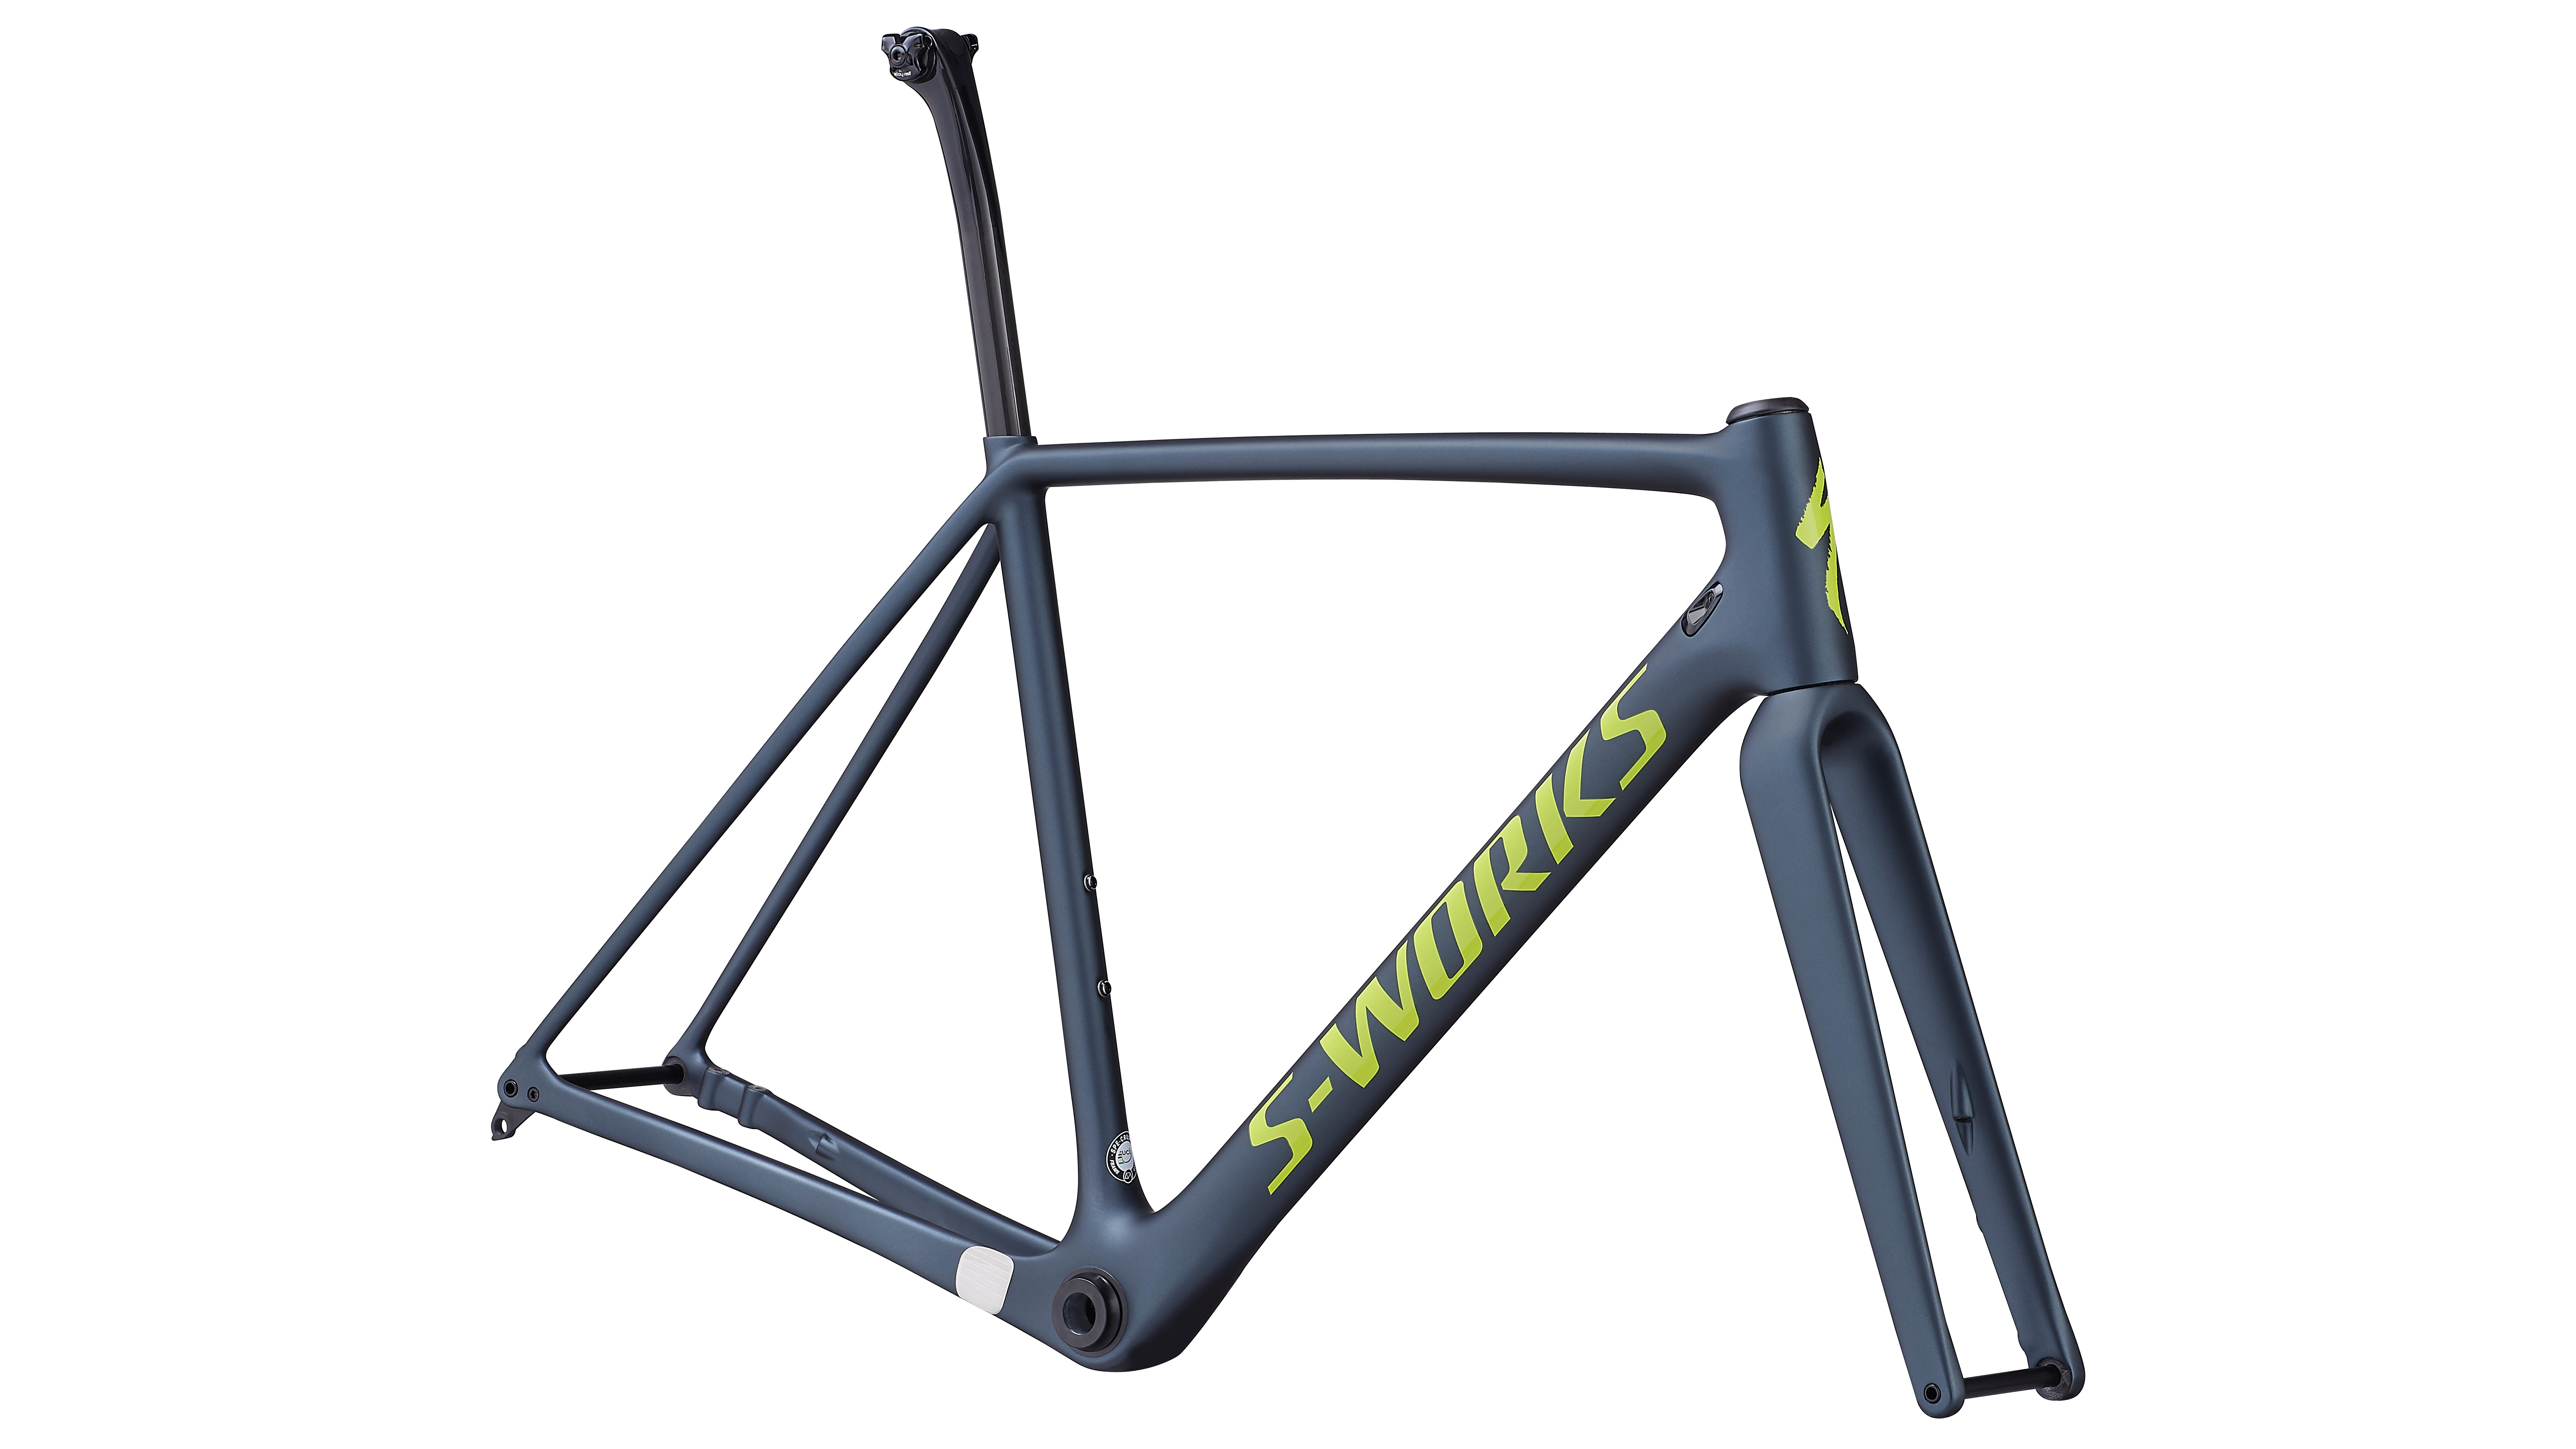 The S-Works CruX is available as a frameset too